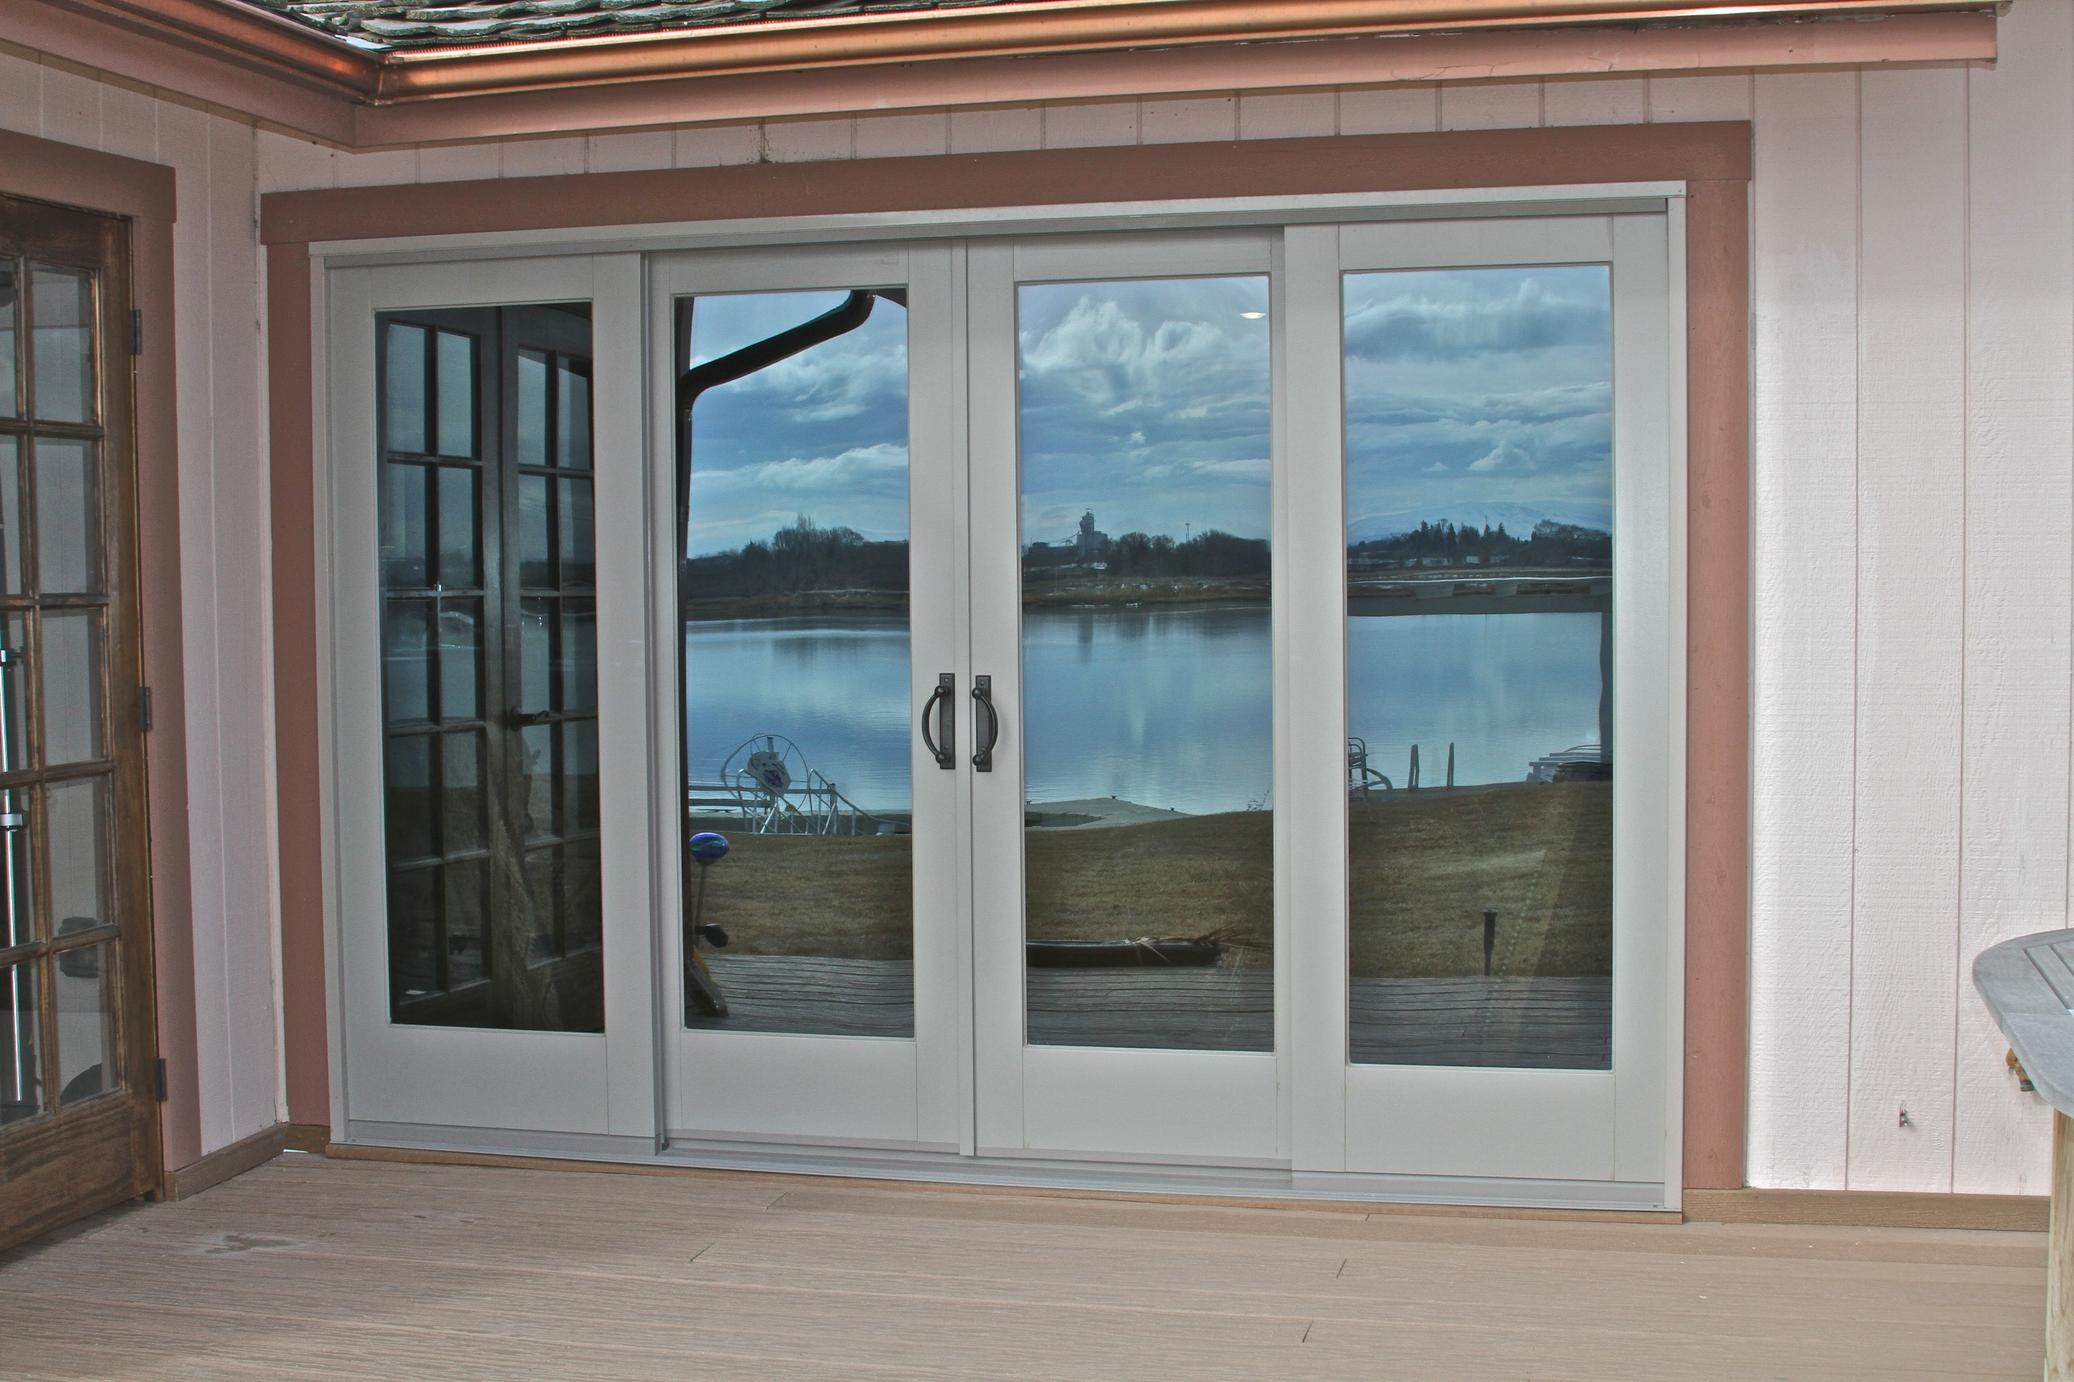 French Doors Home Depot   Homedepot French Doors   French Doors at Home Depot